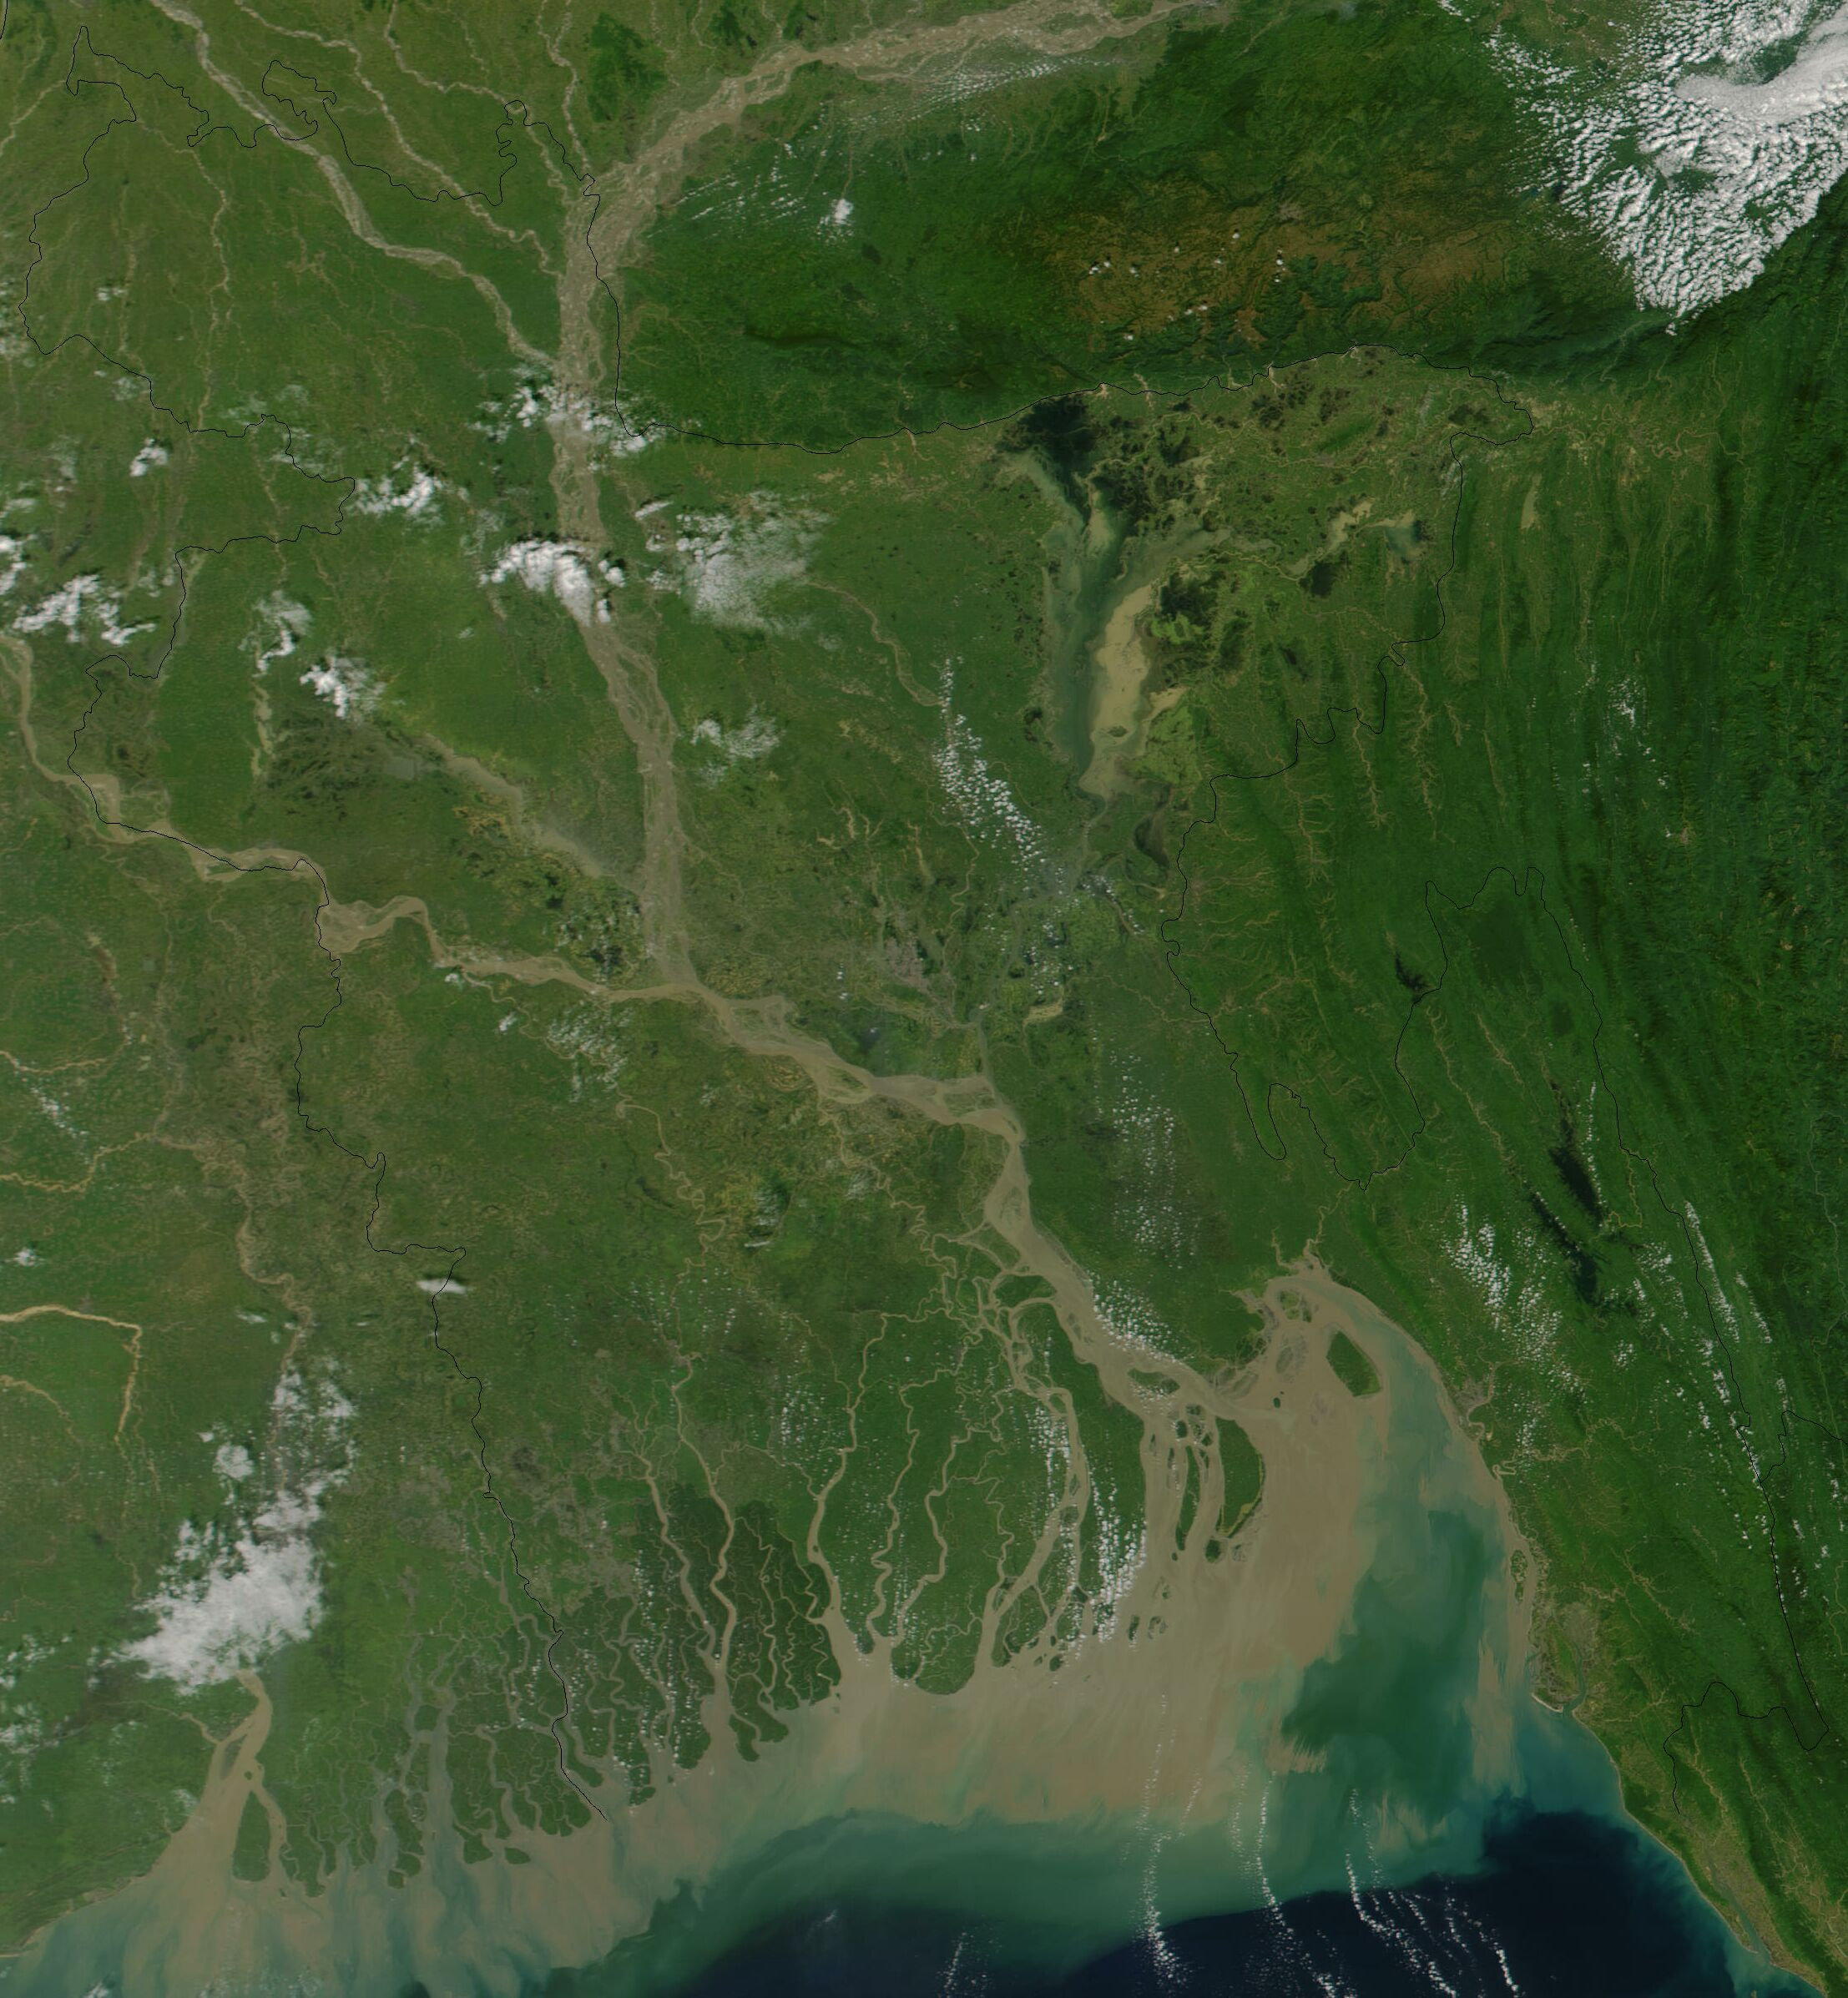 https://upload.wikimedia.org/wikipedia/commons/3/3b/Satellite_image_of_Bangladesh_in_October_2001.jpg